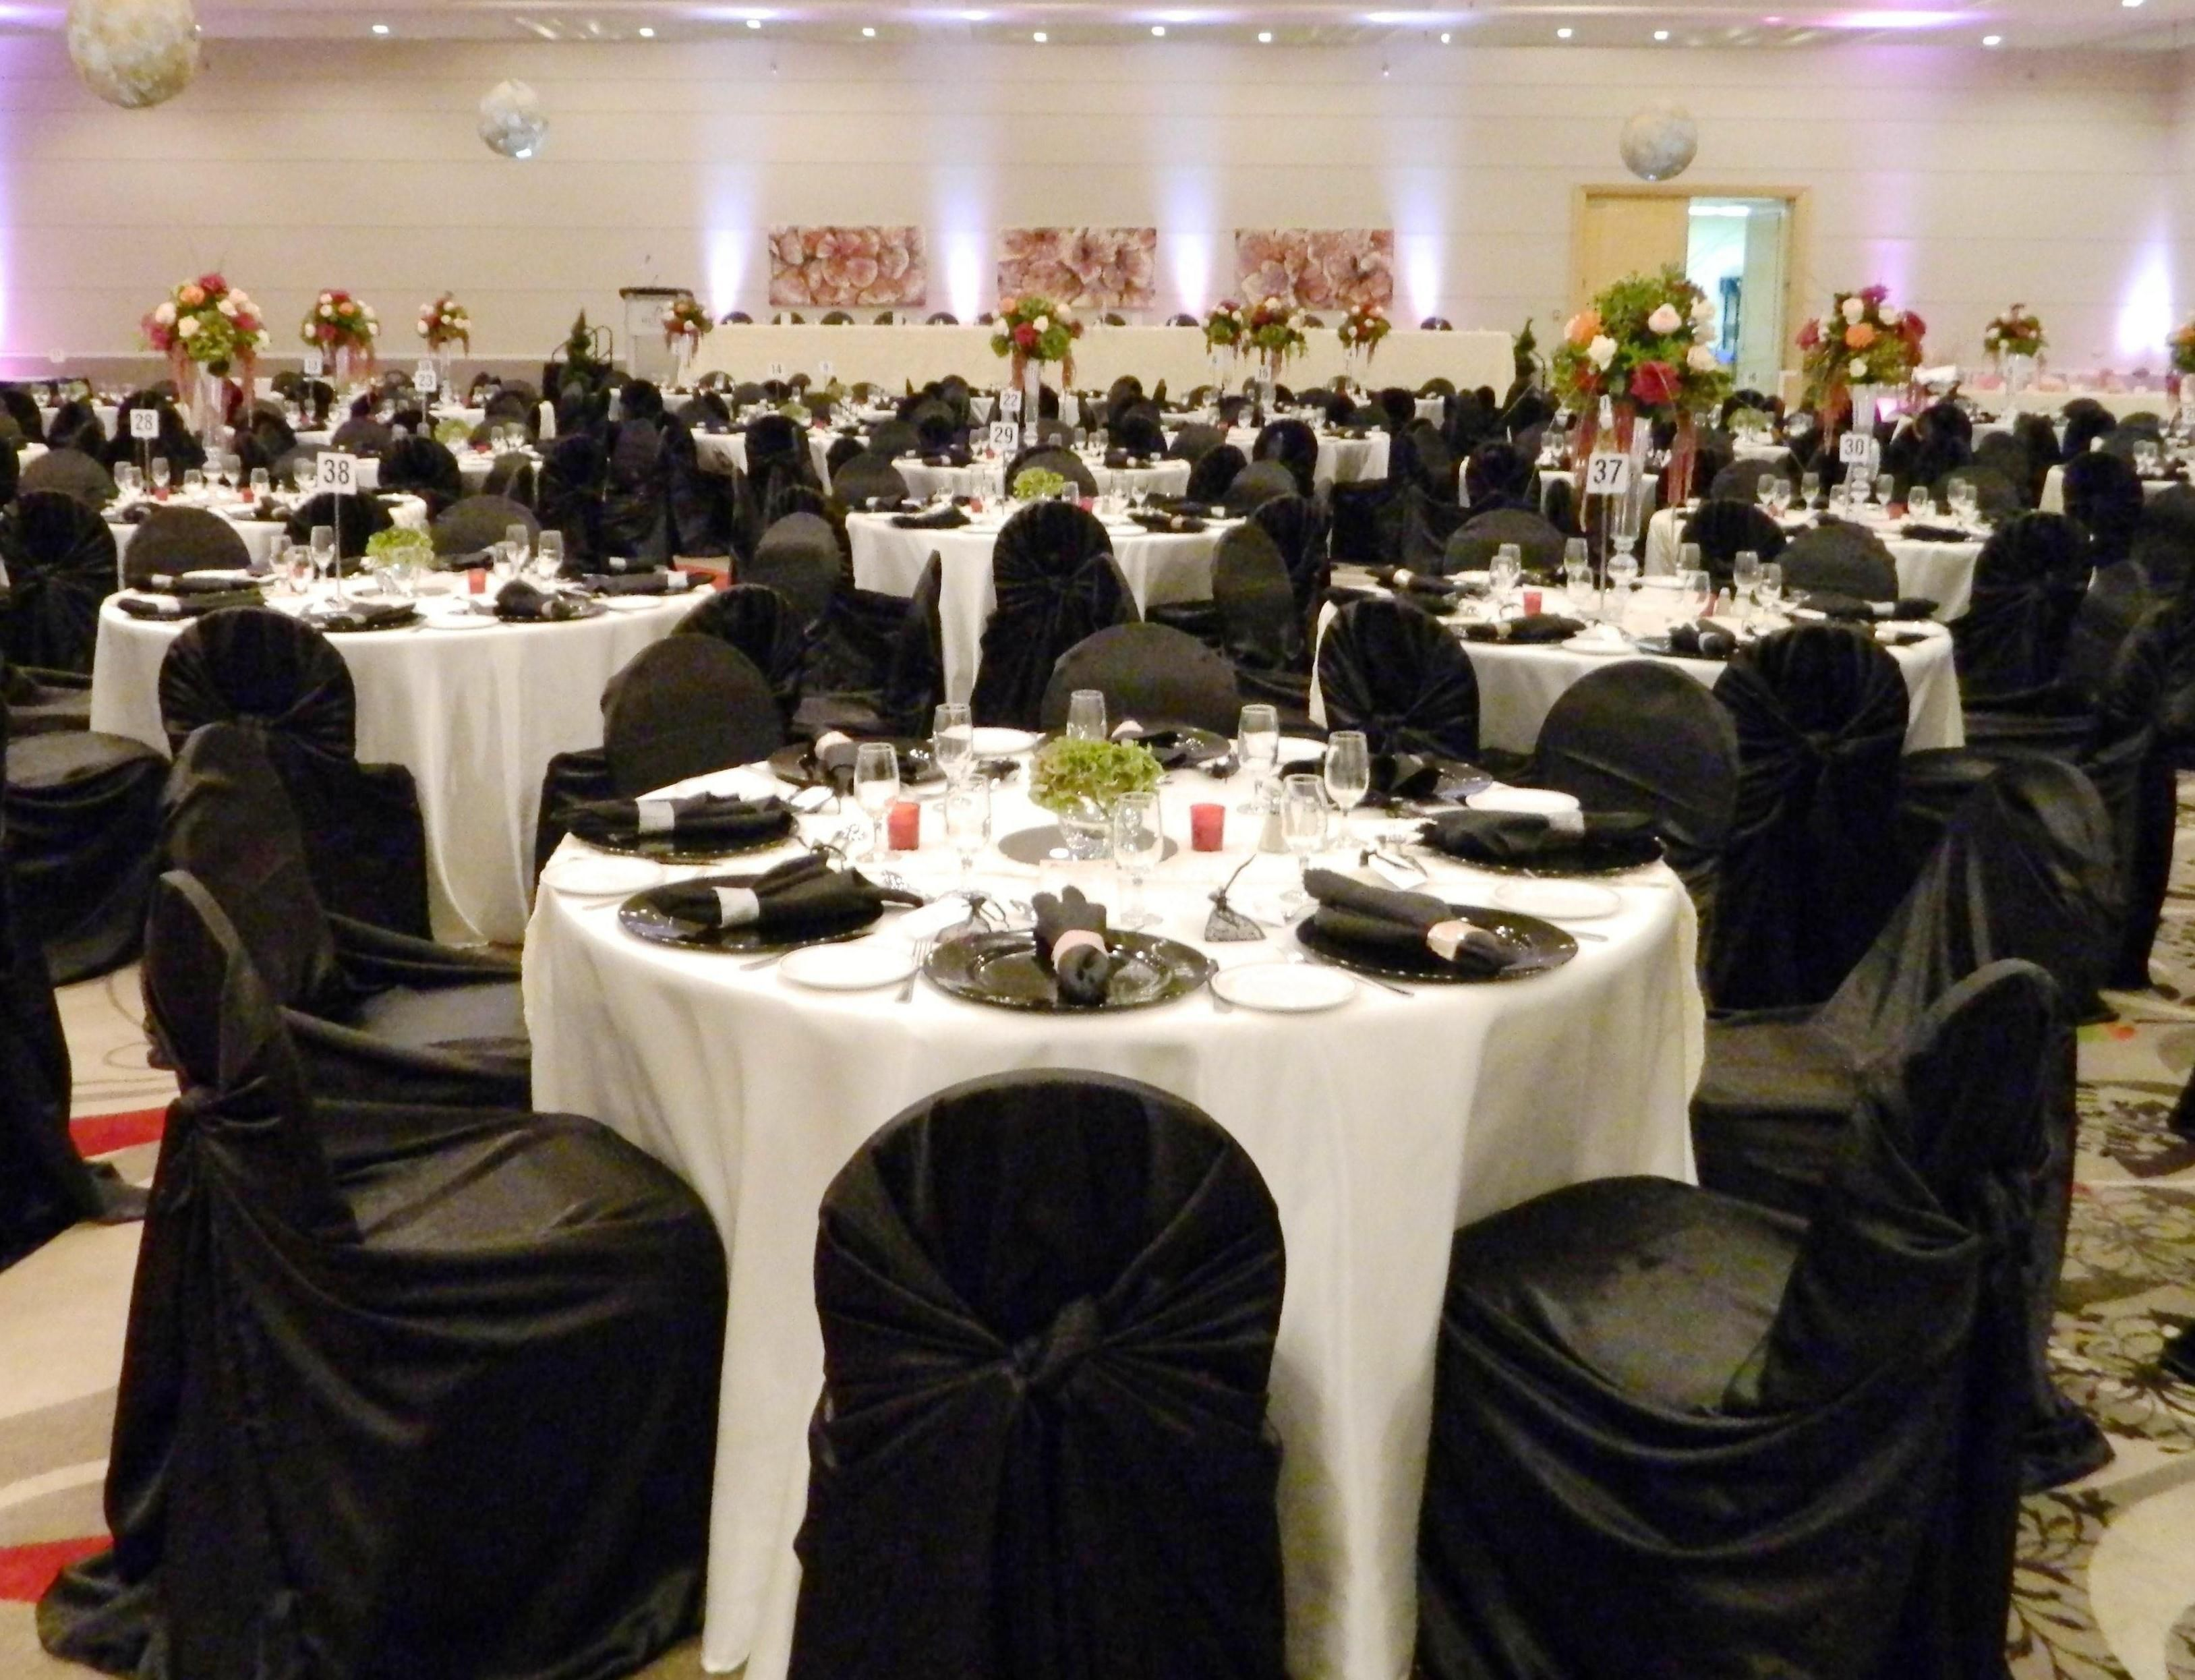 chair covers for event lumbar support office white tablecloths black runner napkins